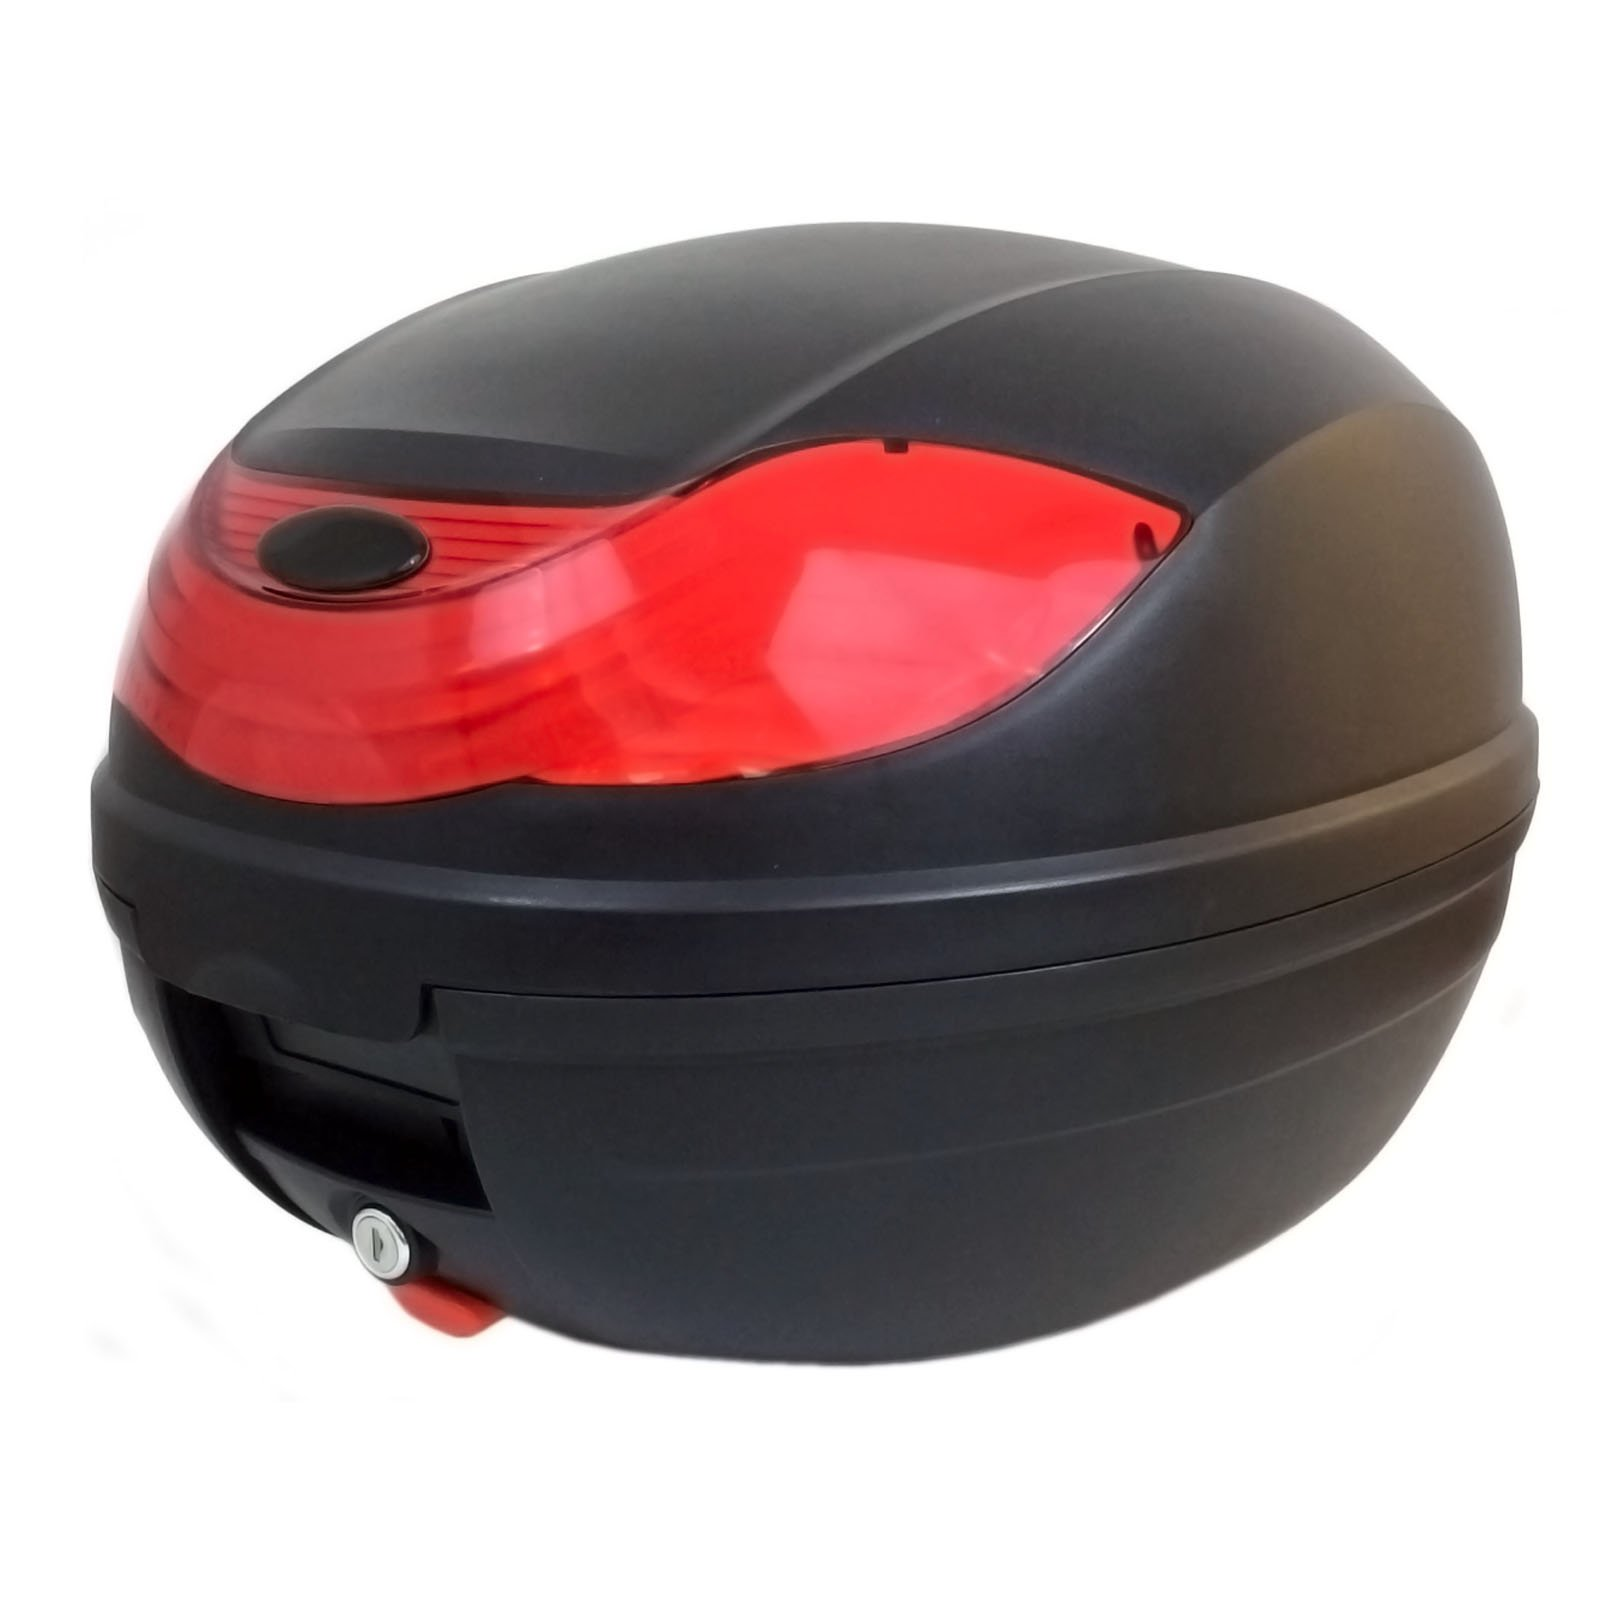 MMG Motorcycle Scooter Top Box Tail Trunk Luggage Box, 32 Lt Capacity, Can Store 1 Helmet, Hard Case (815) by MMG